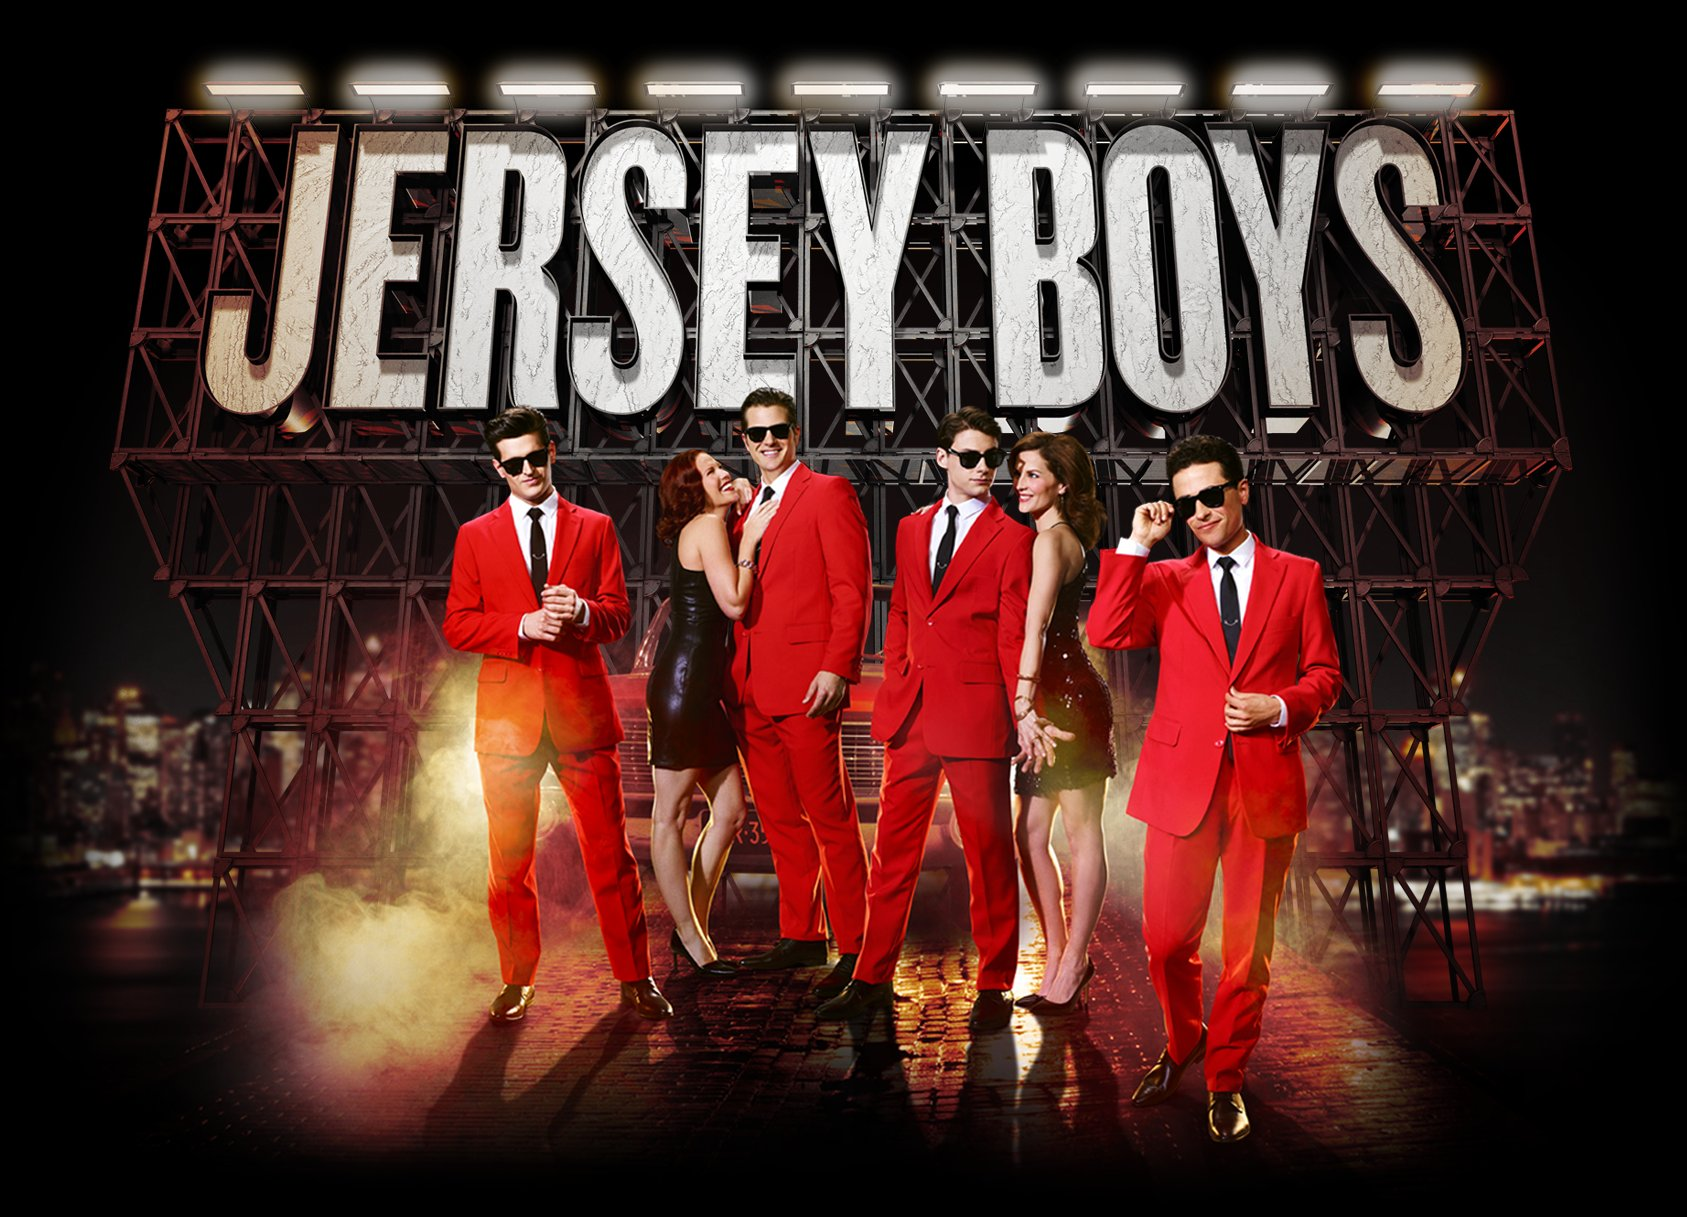 ncl_Jersey_Boys_Key_Art.jpeg